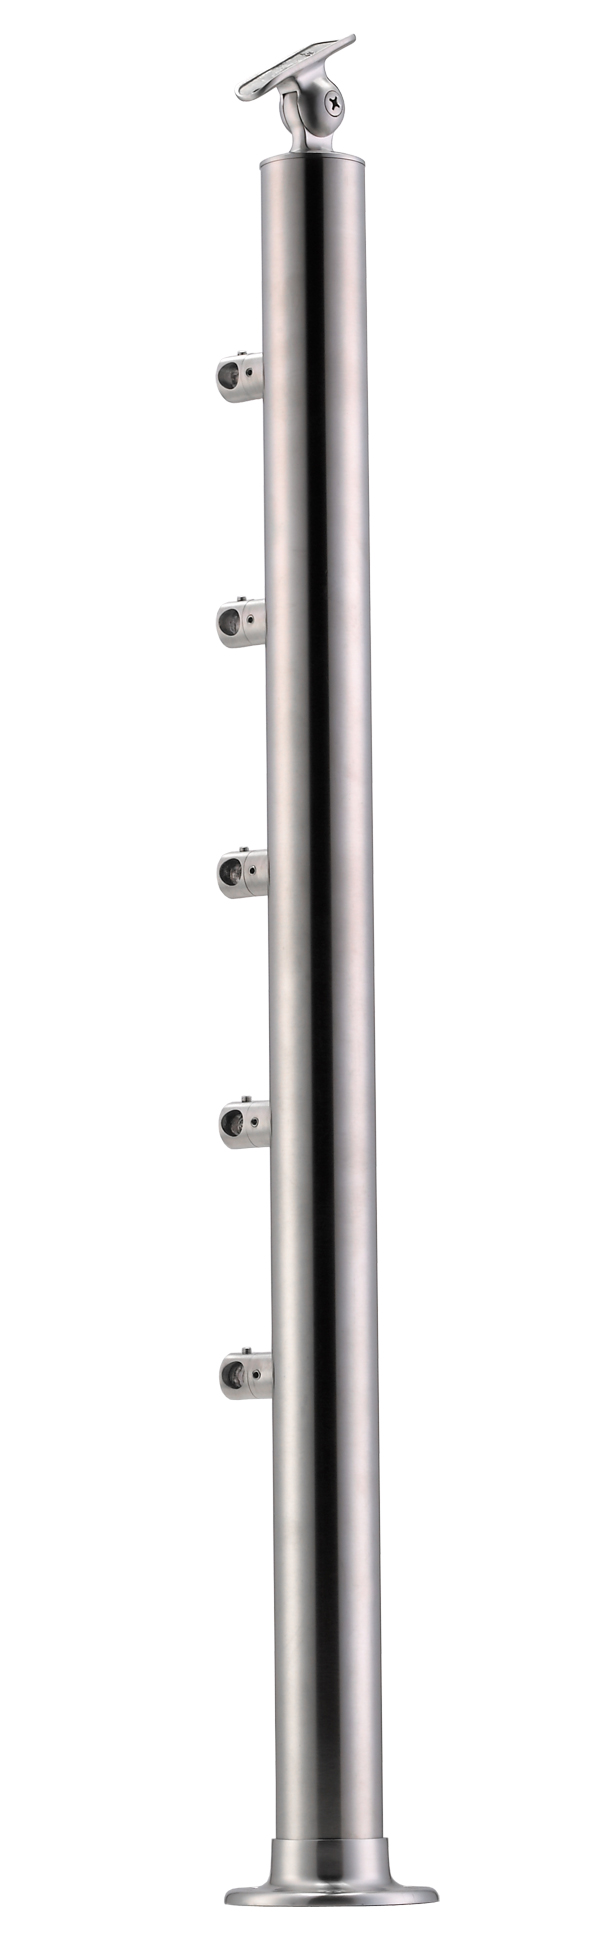 Stainless Steel Balustrade Posts - Tubular - SS:2020556A